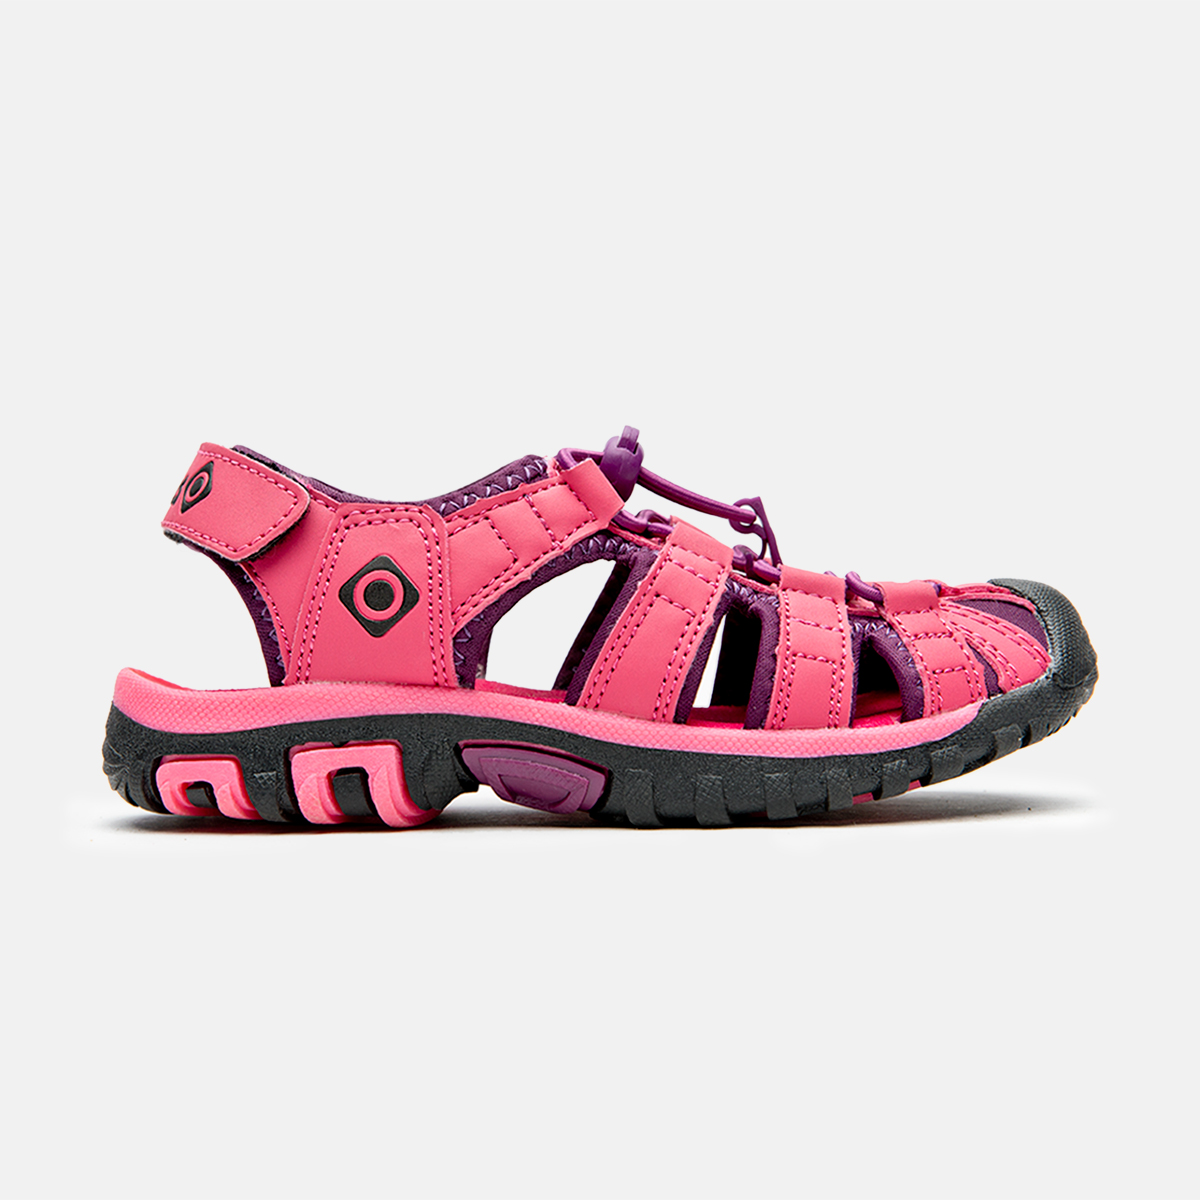 UNISEX'S FROSTY SANDALS FUXIA